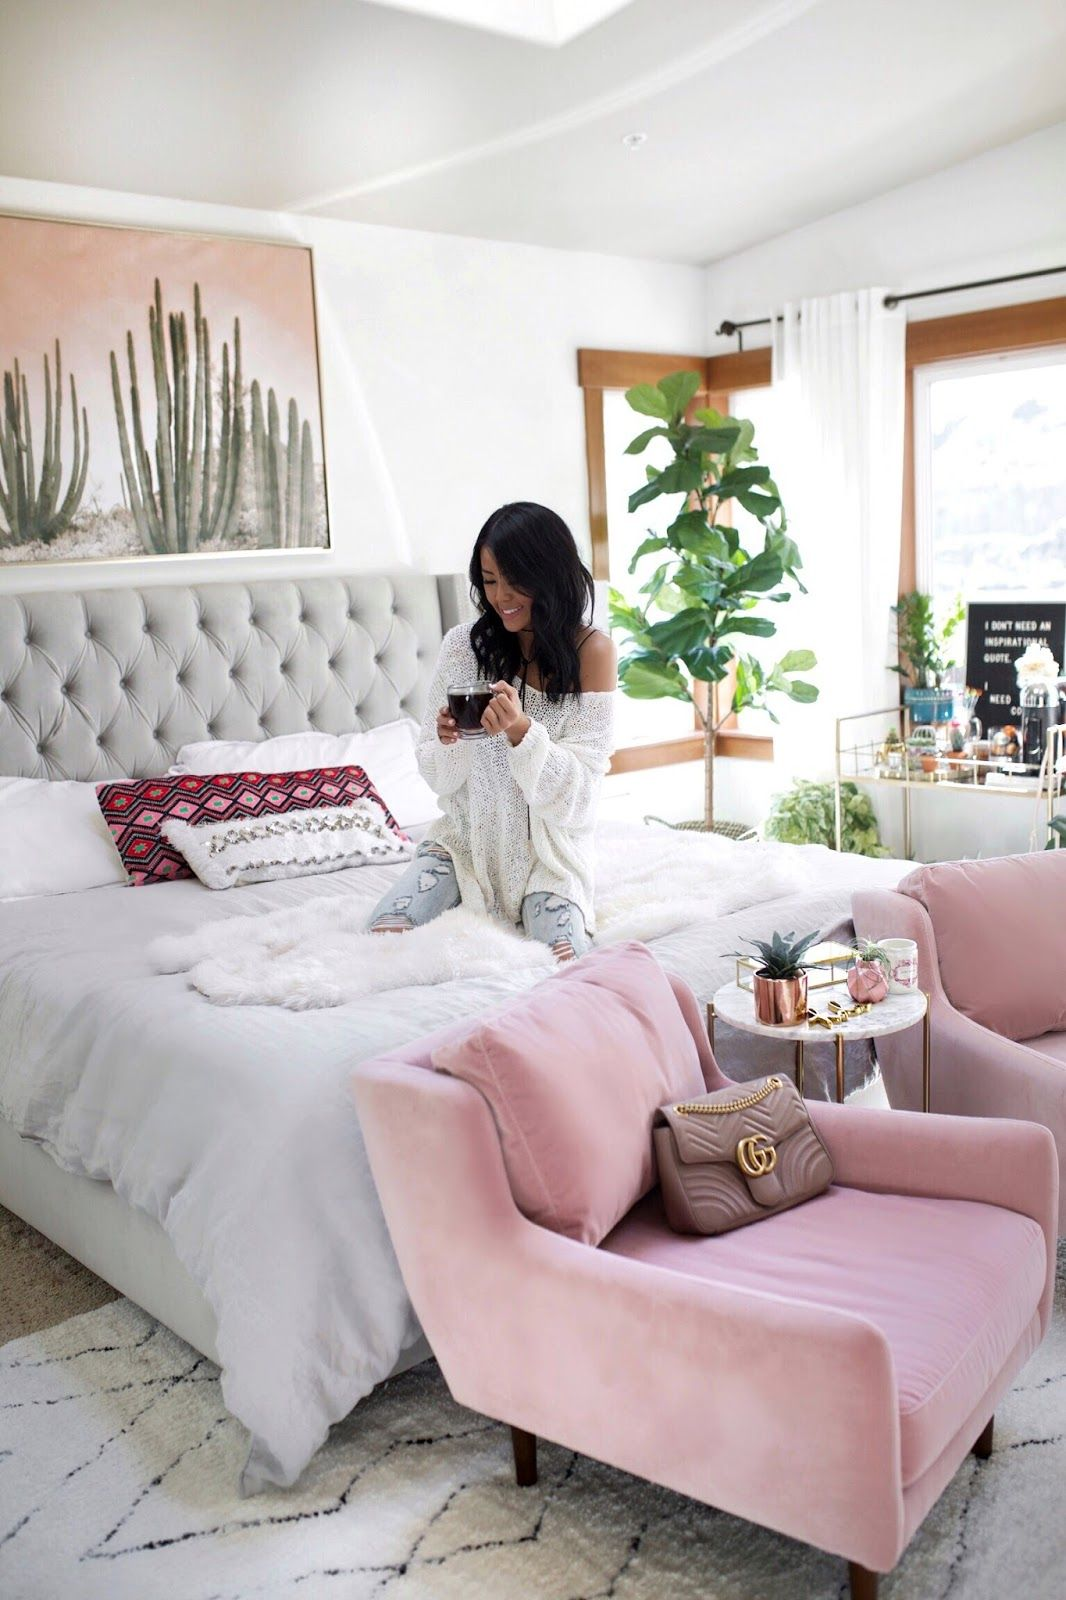 Blogger White Bedroom Inspiration | Gypsy Tan - Blush Pink Chairs ...